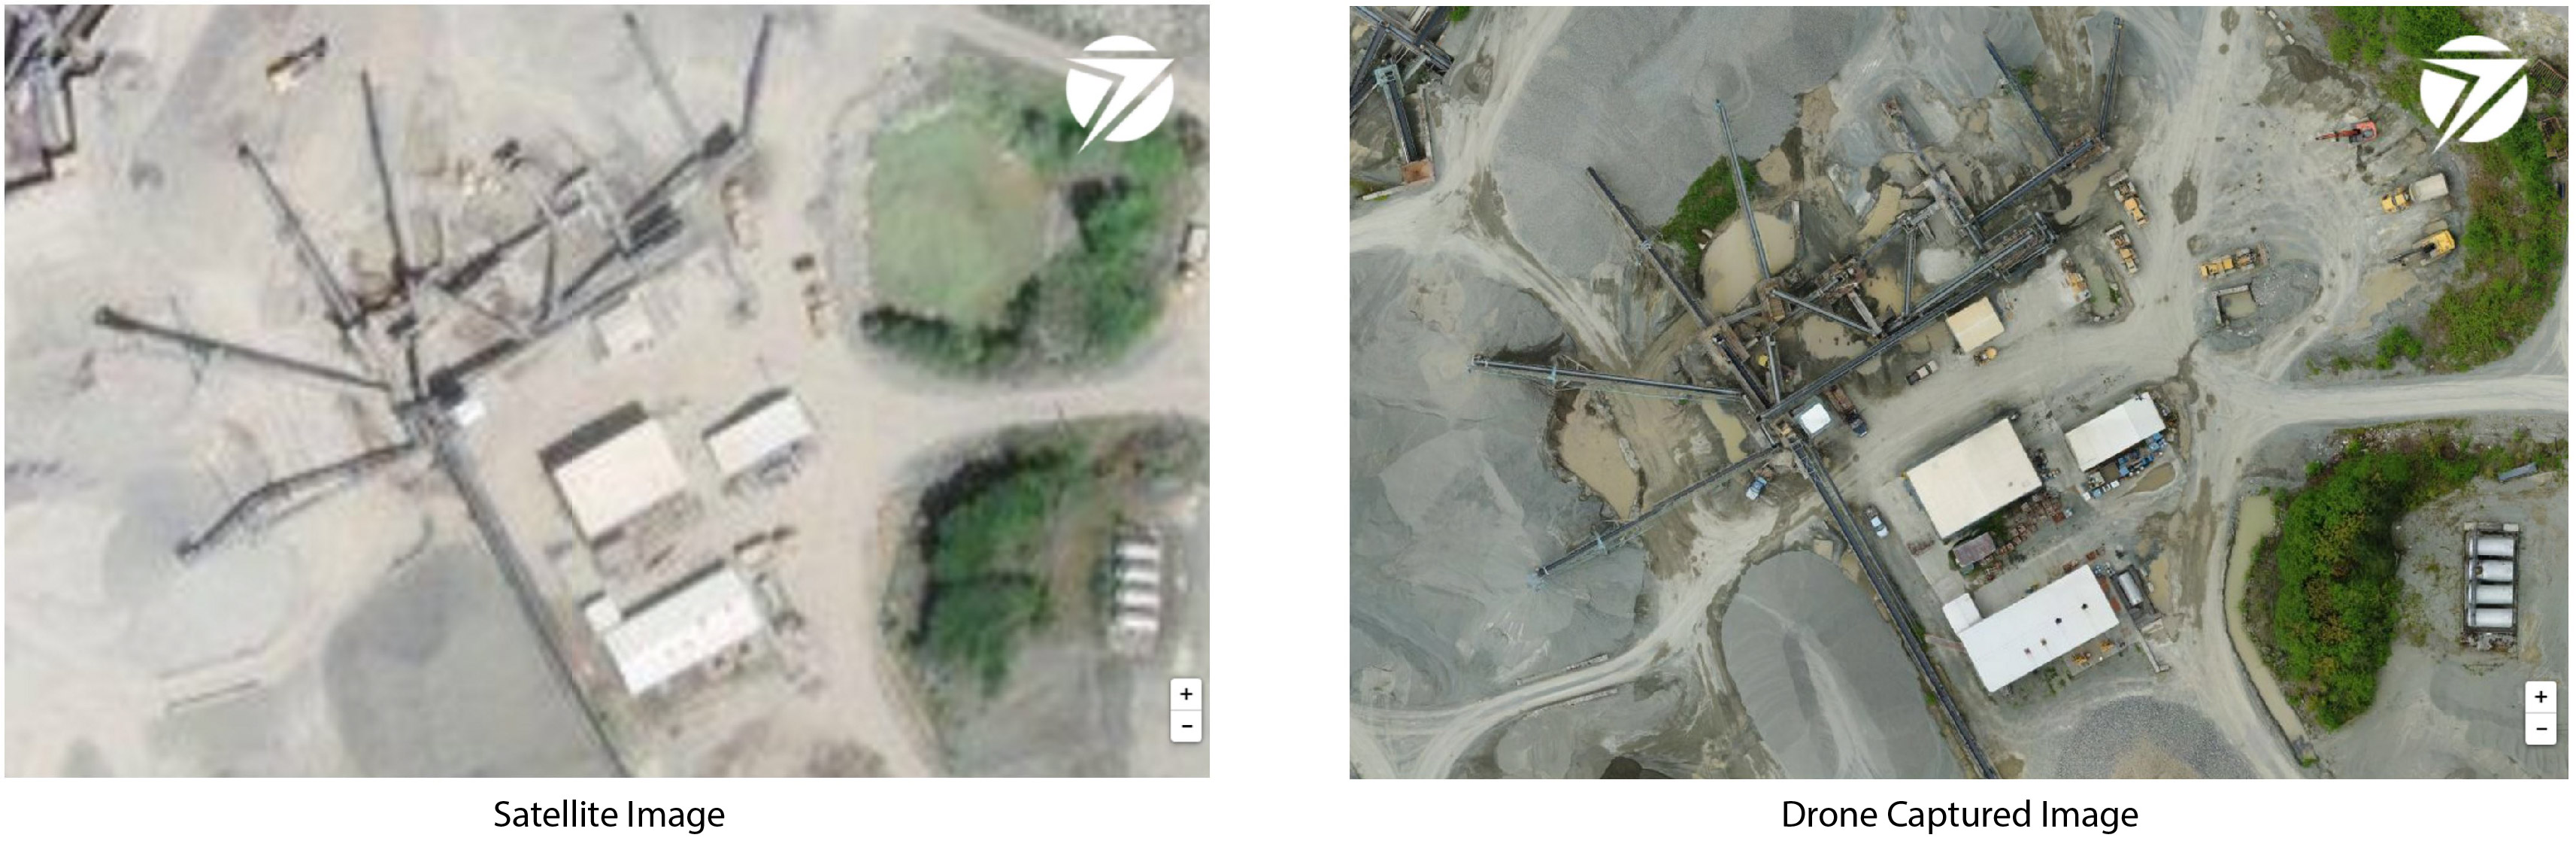 Satellite imagery is less clear than the drone captured imagery which is sharp